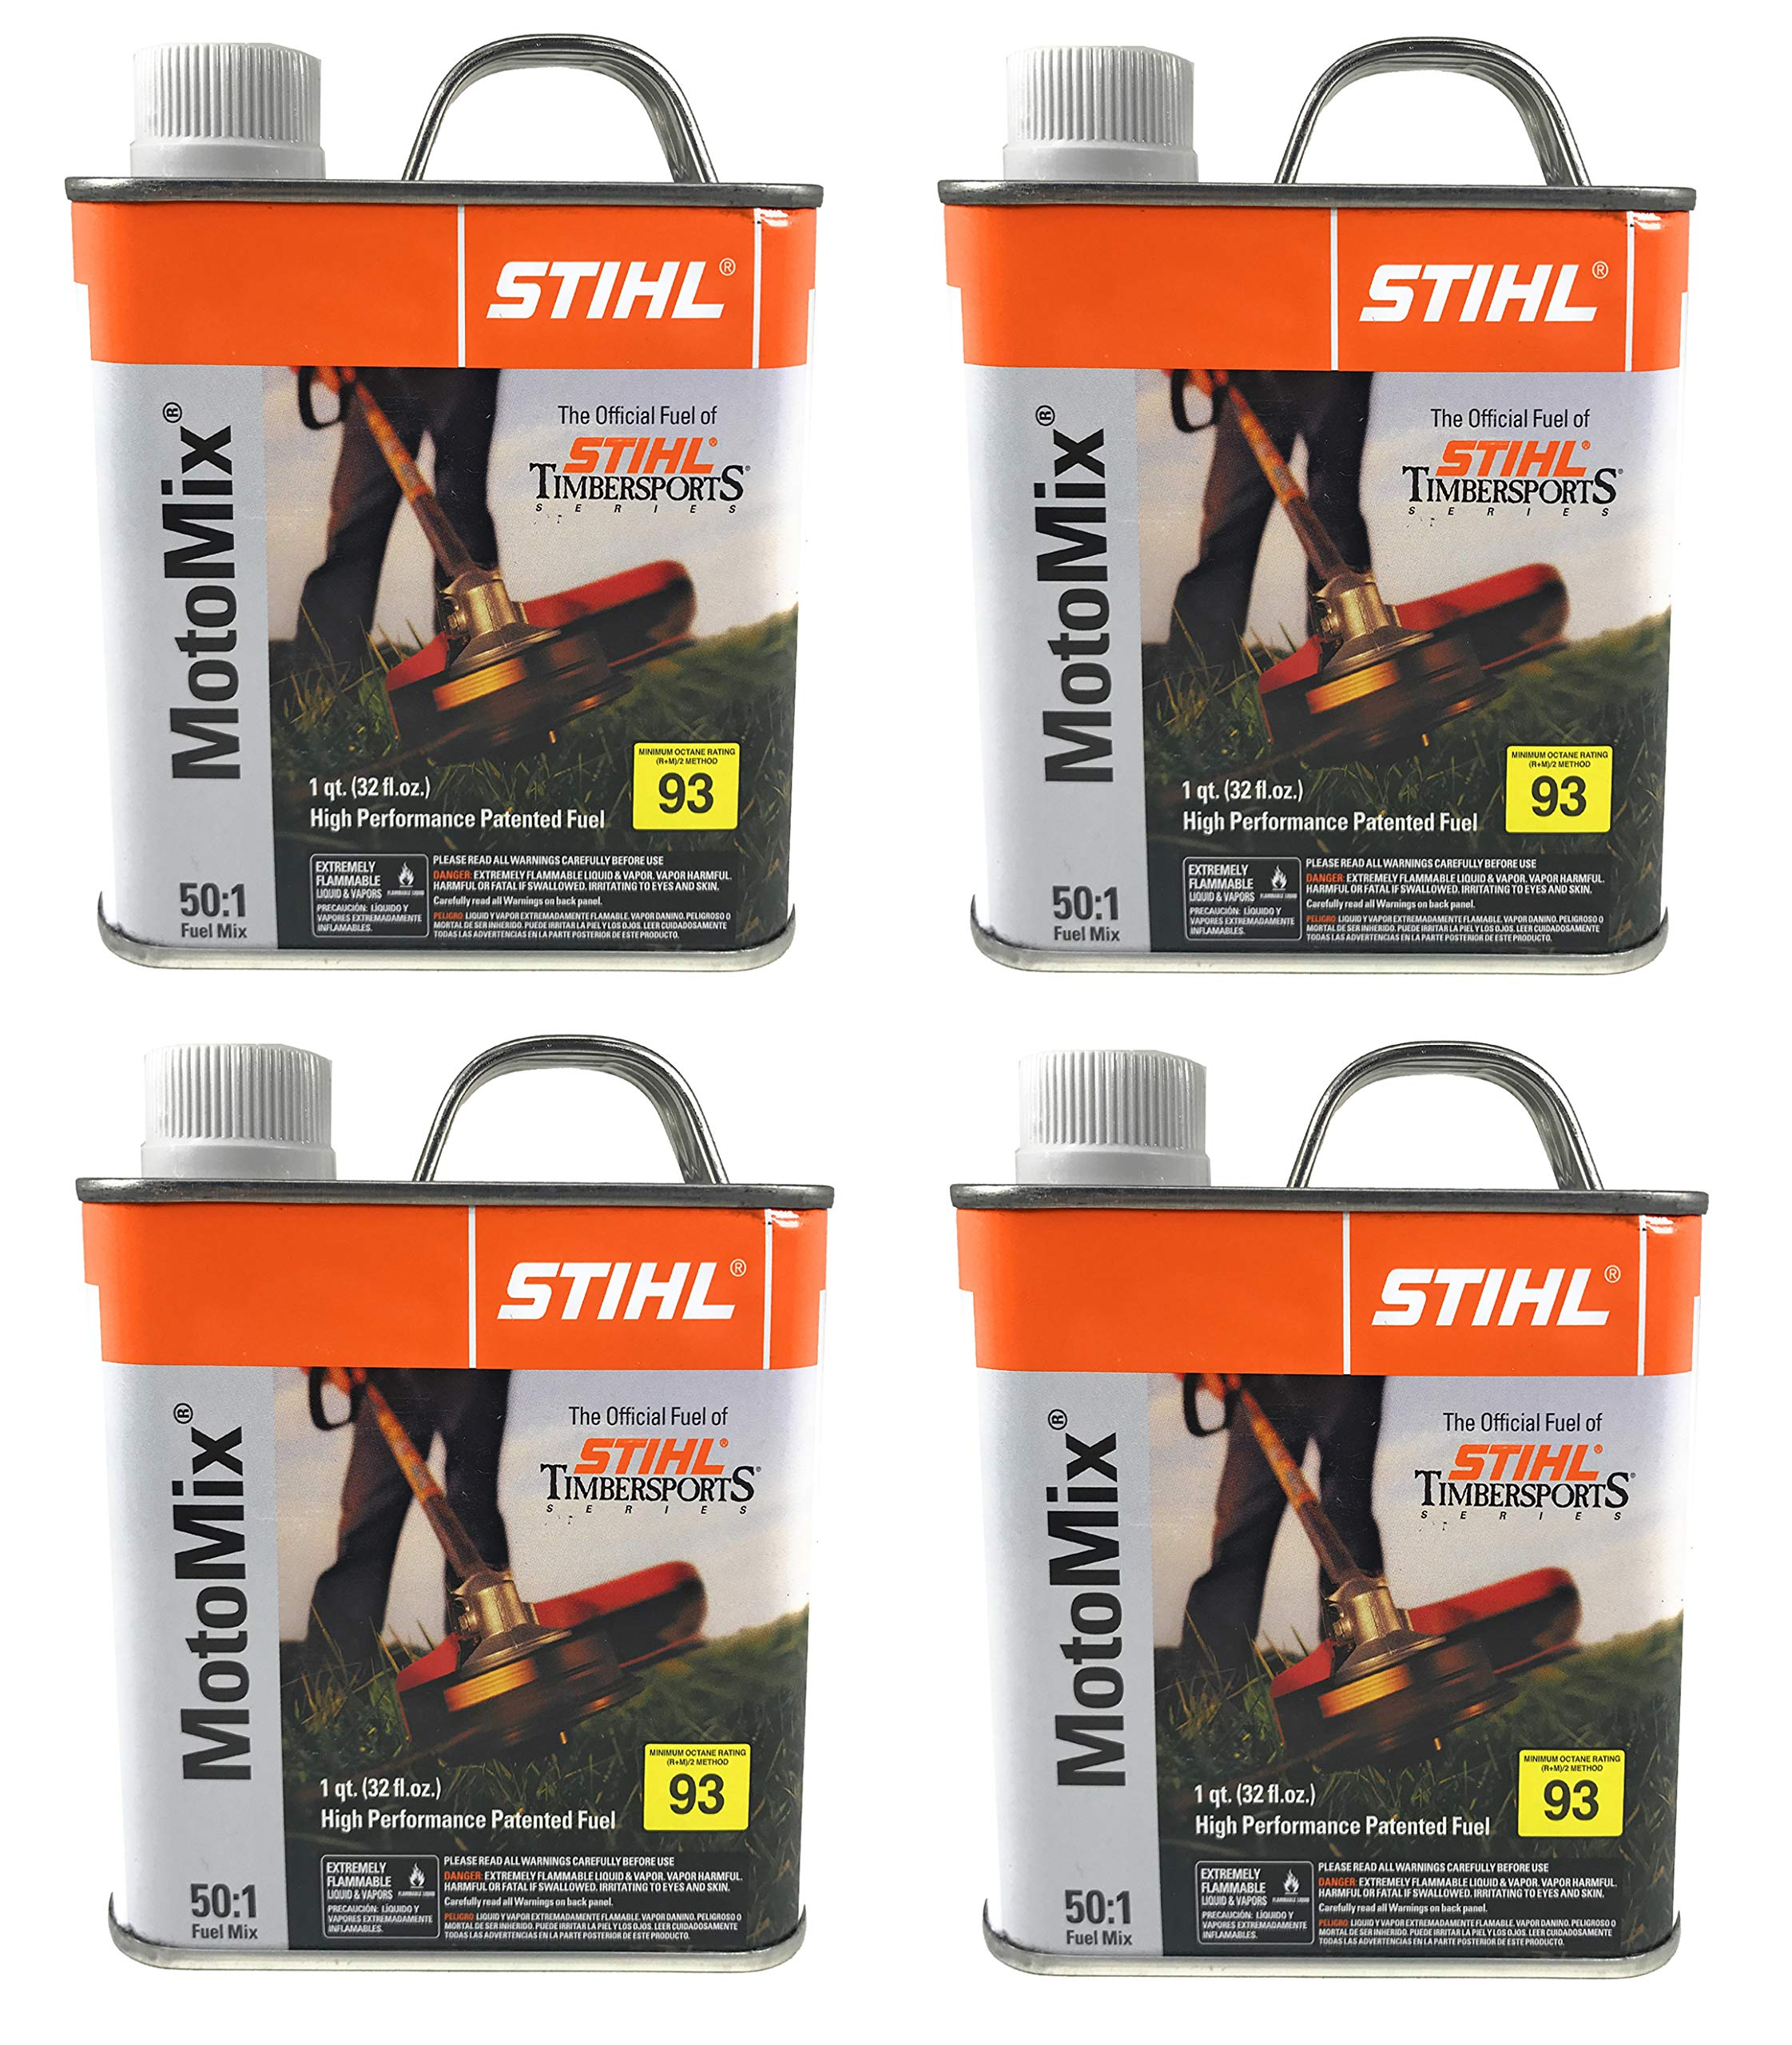 Stihl 7010 871 0203 Motomix 50:1 2 Cycle PreMix Fuel, Pack Of 4 by Stihl